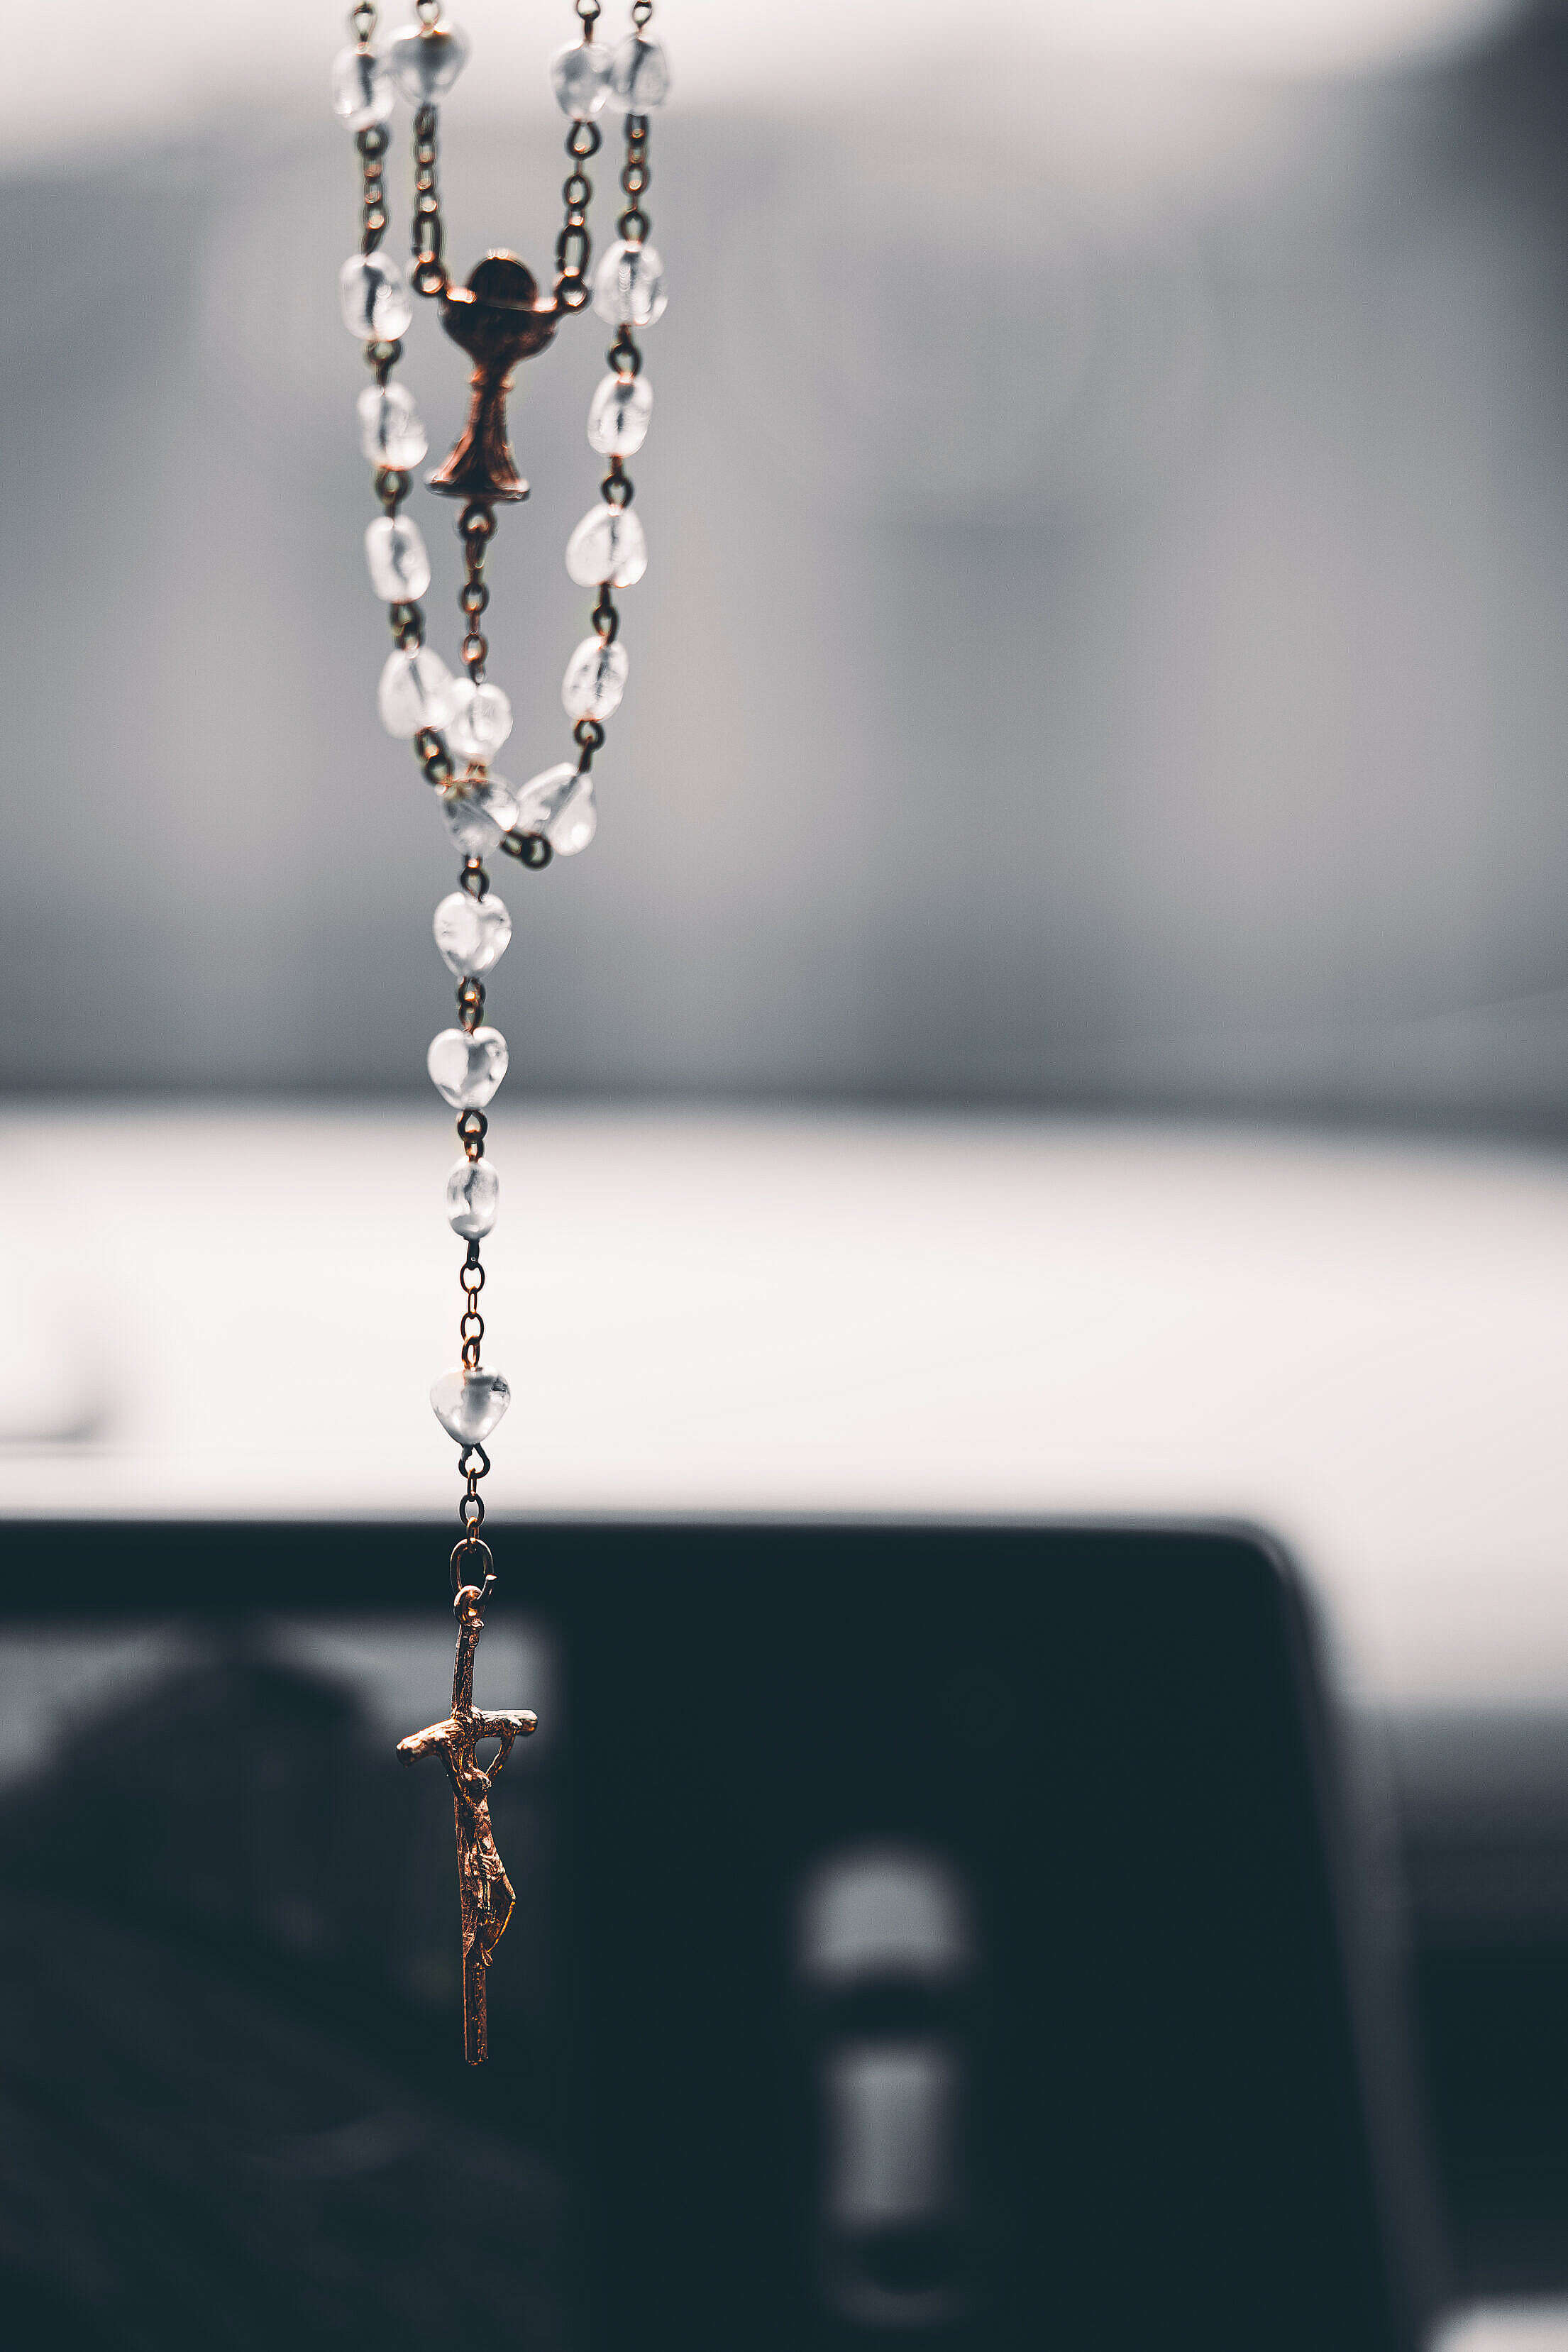 Rosary Christian Cross Hanging on the Mirror in the Car Free Stock Photo